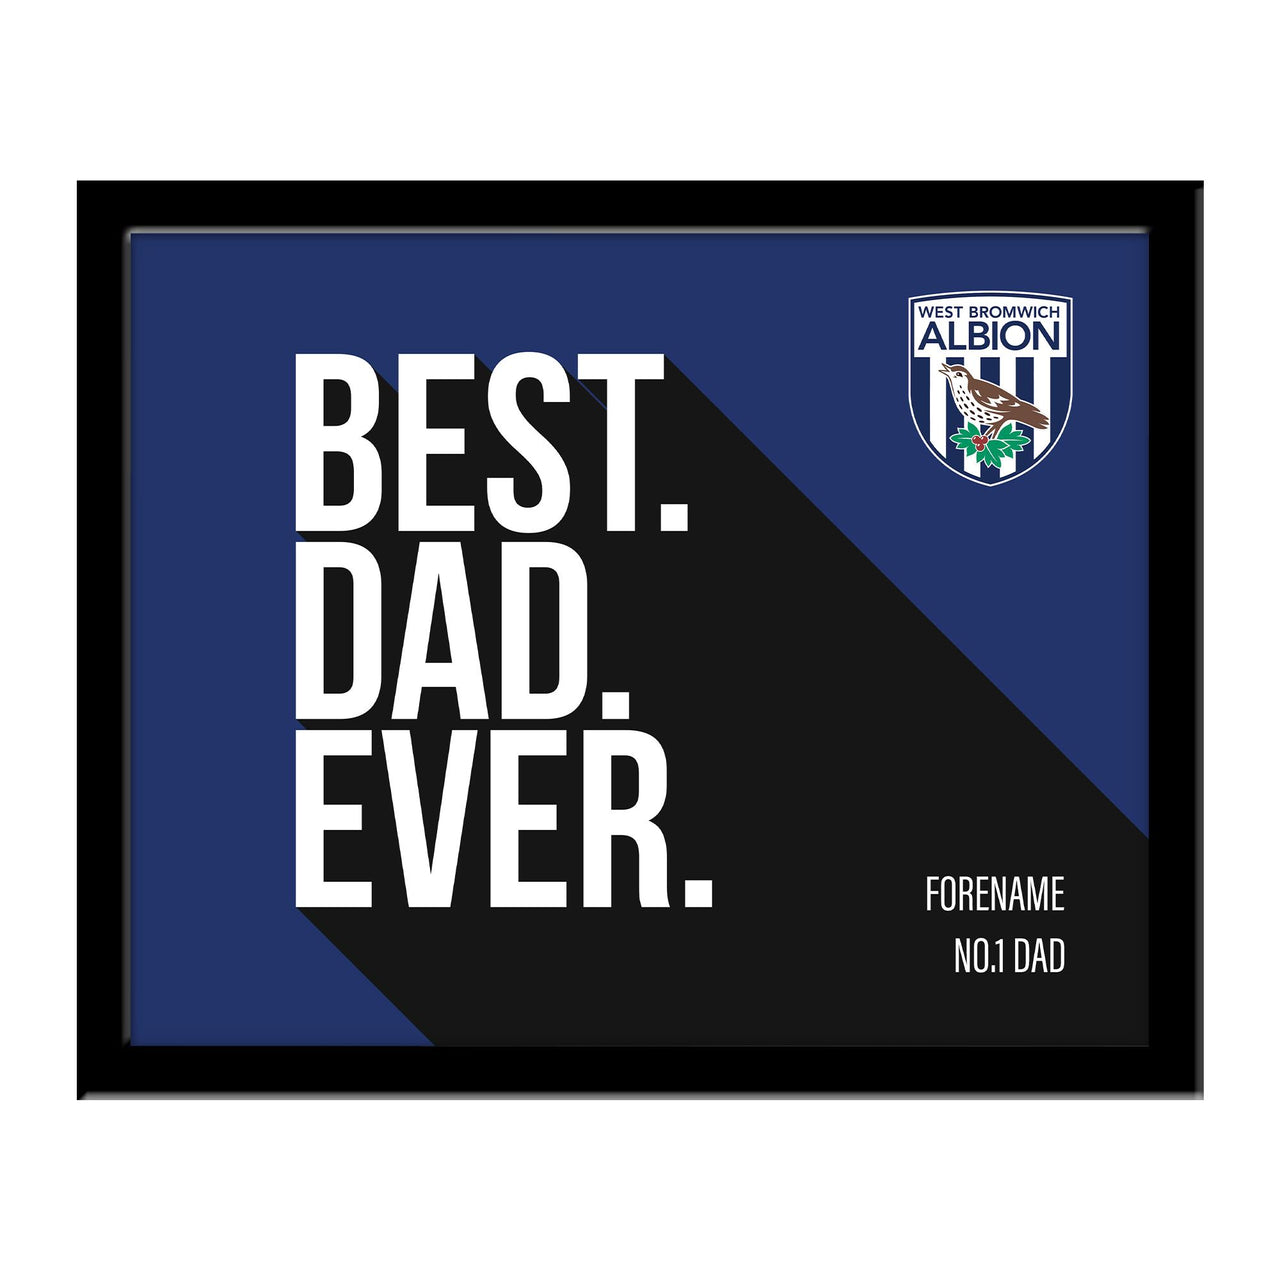 West Bromwich Albion Best Dad Ever 10 x 8 Photo Framed